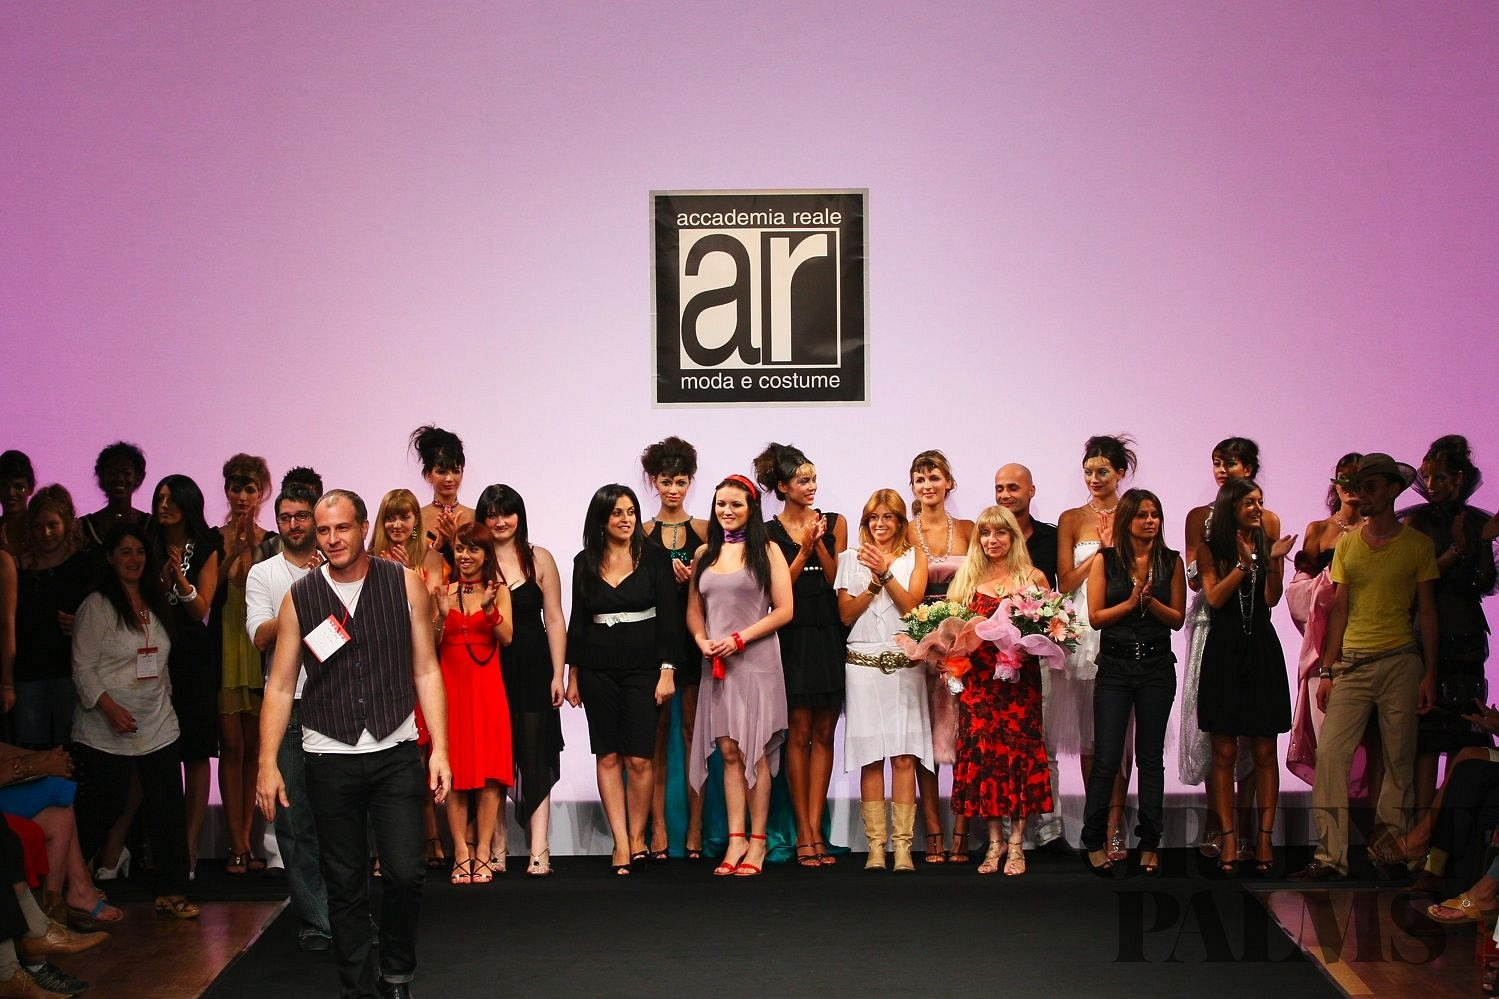 Accademia Reale Herbst/Winter 2007-2008 - Couture - 1